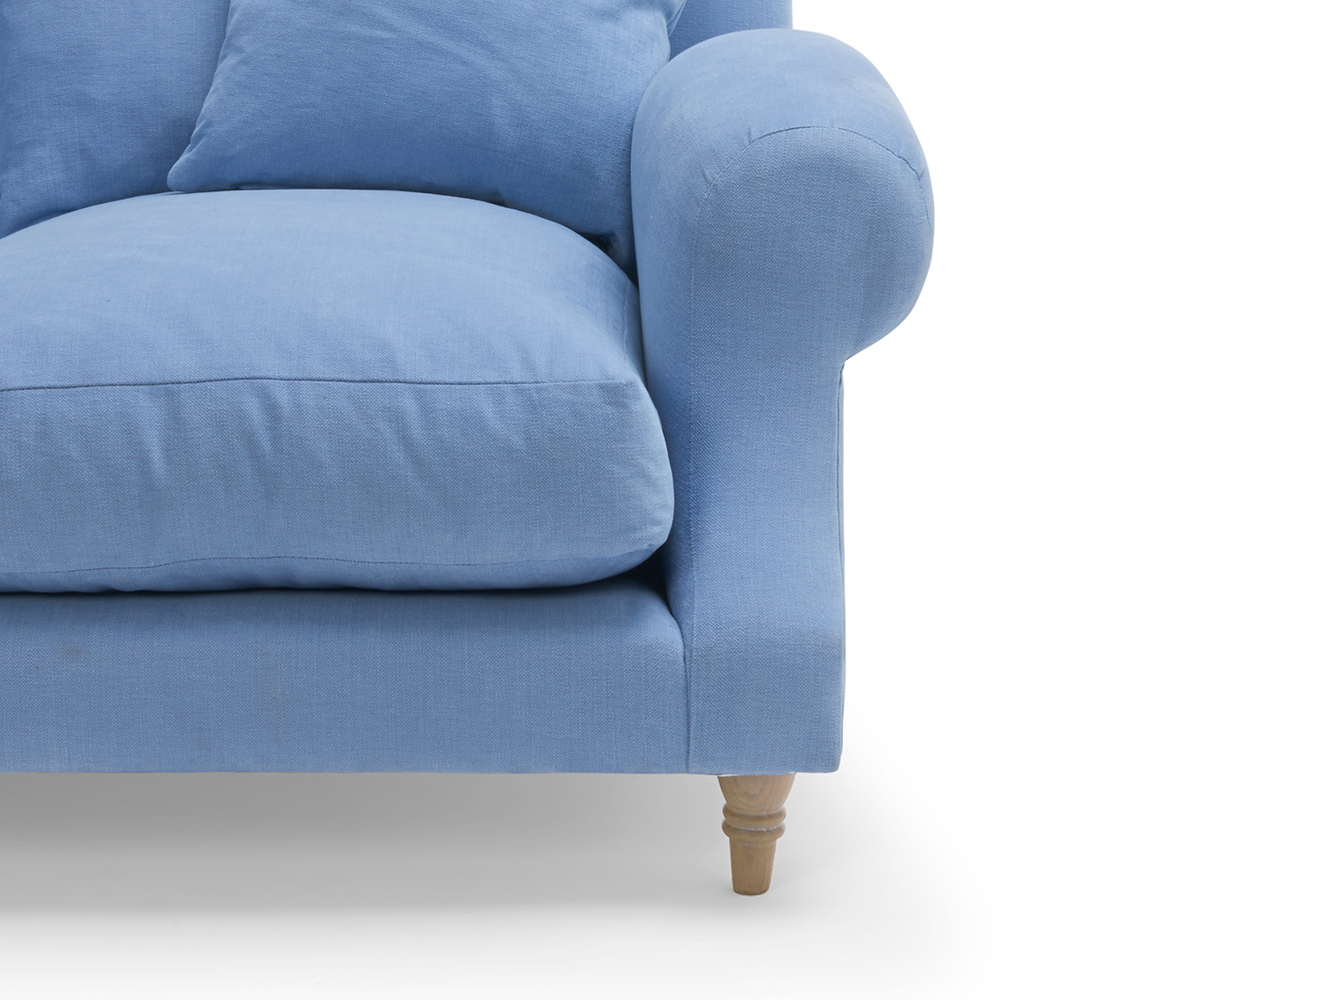 Pleasing Crumpet Love Seat In Thatch House Fabric Unemploymentrelief Wooden Chair Designs For Living Room Unemploymentrelieforg